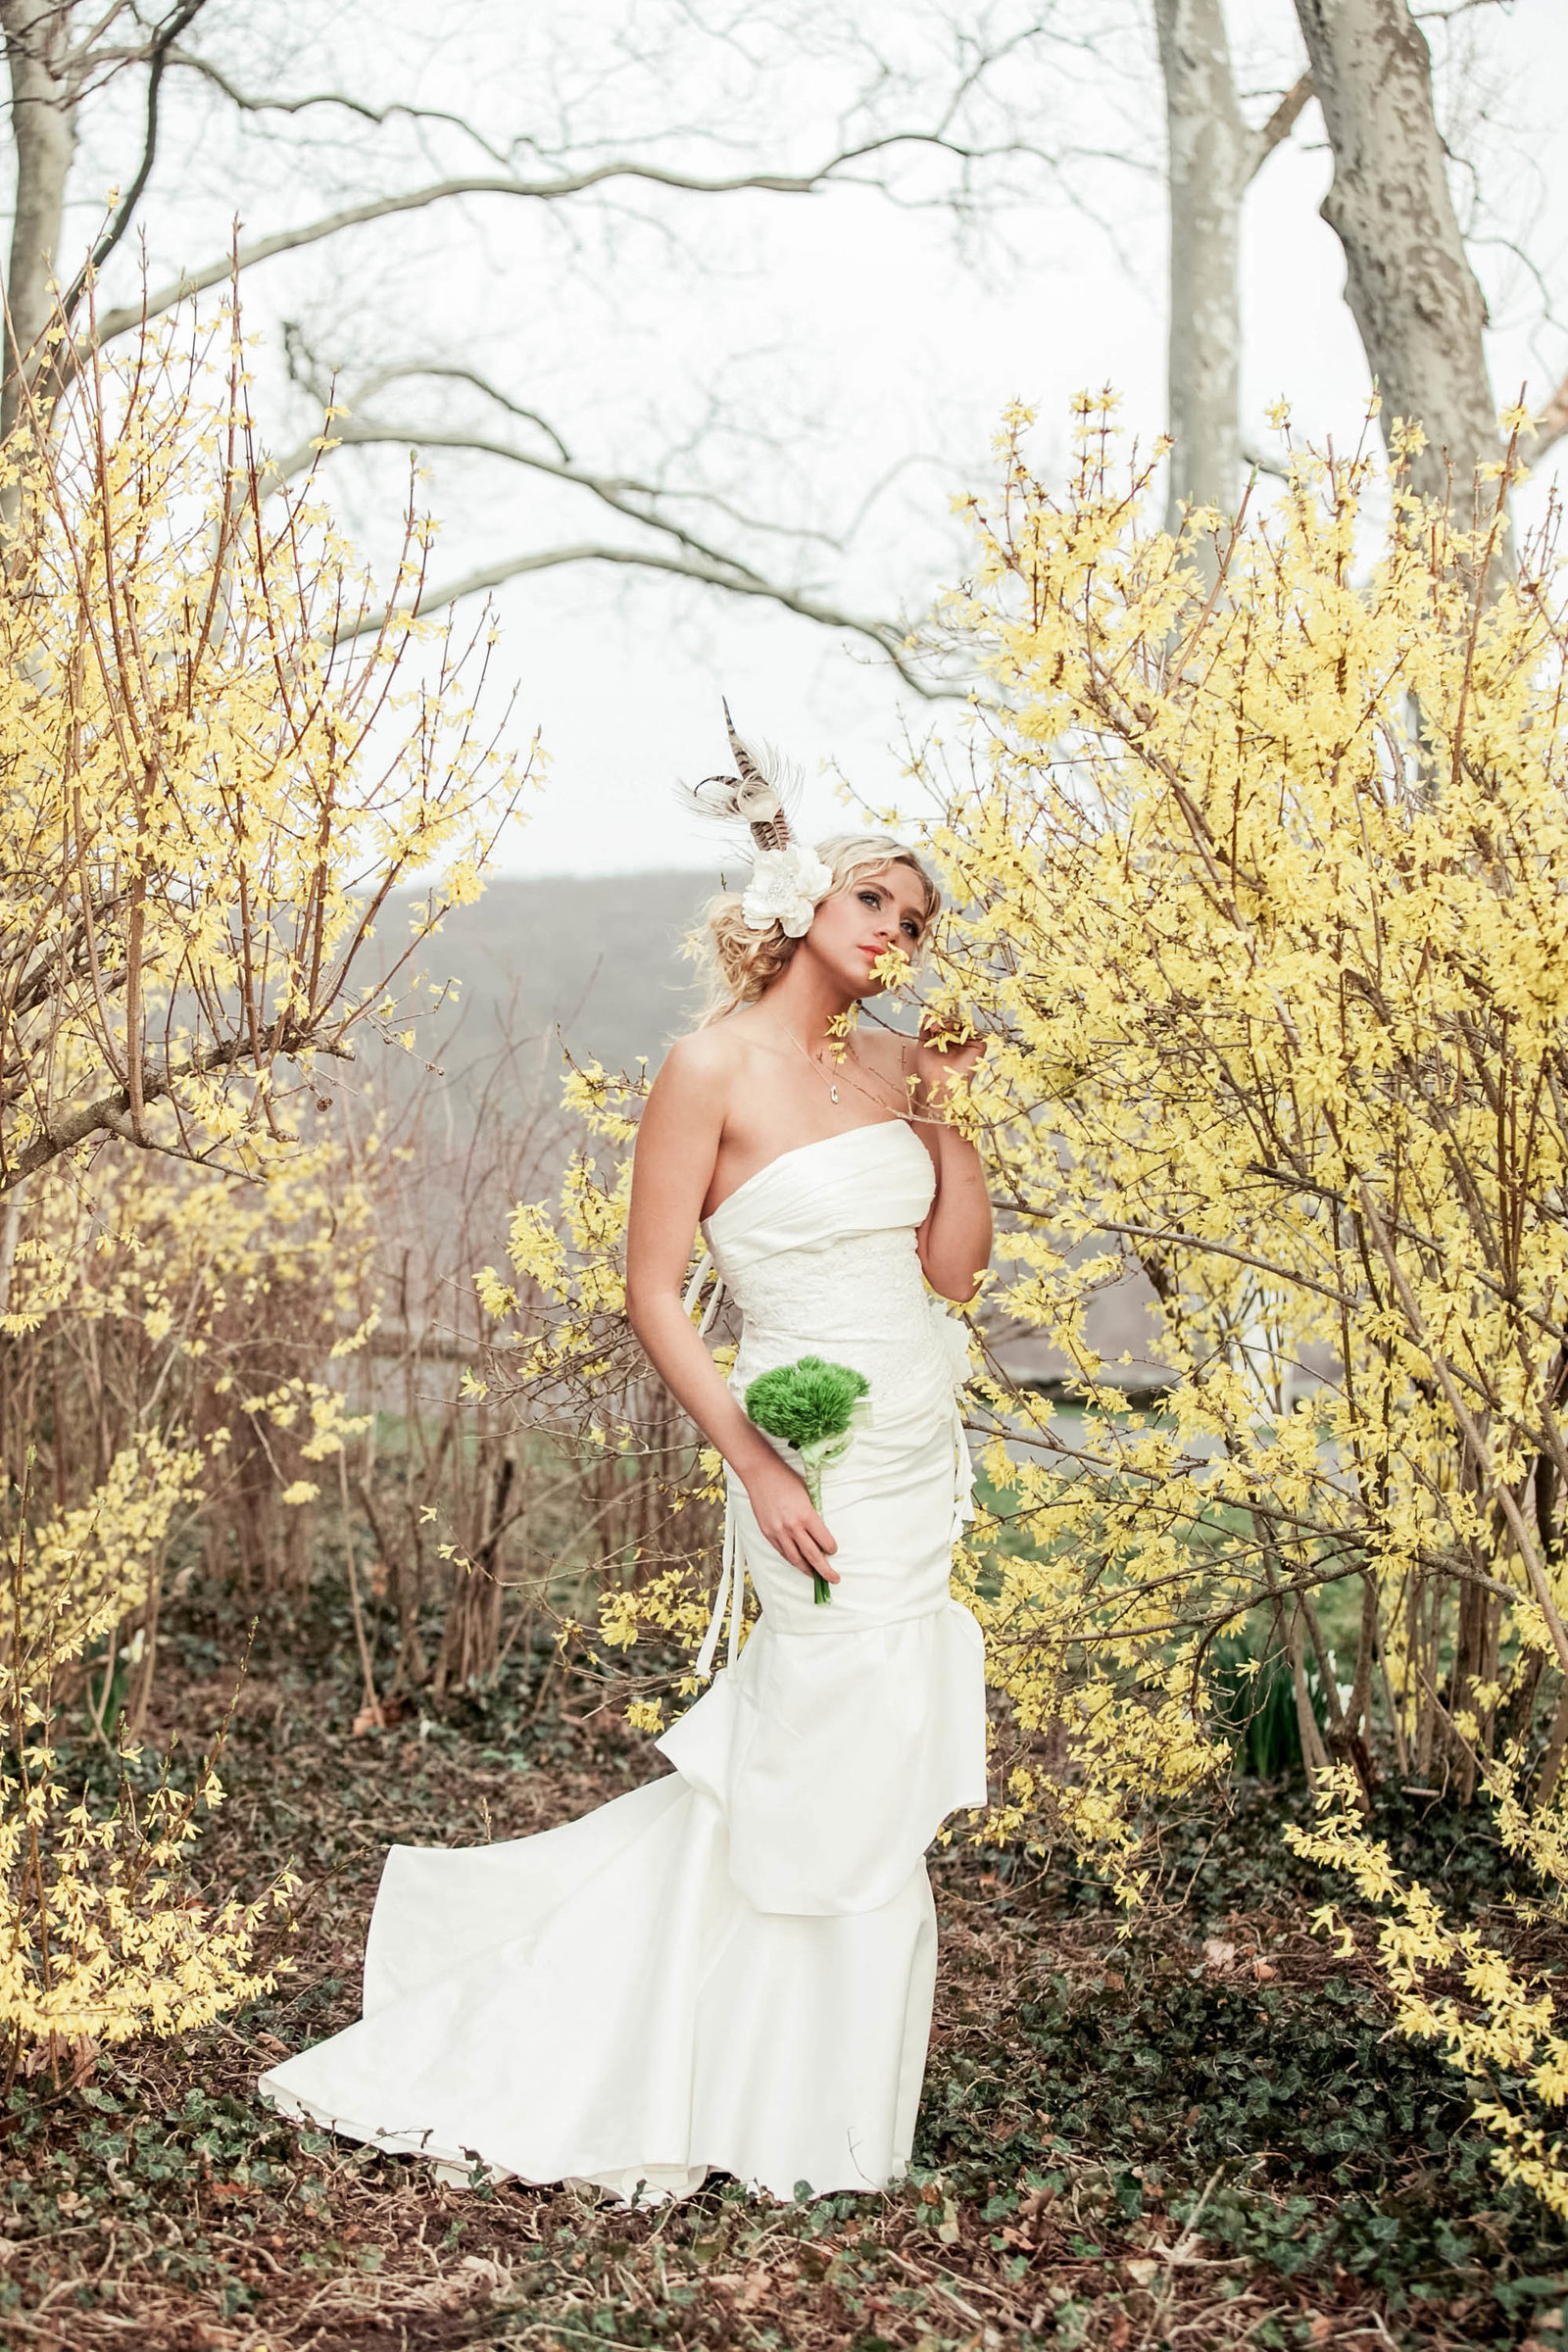 feather-yellow-flower-bridal-fashion-drumore-estate-editorial-pennsylvania-kate-timbers-photography035